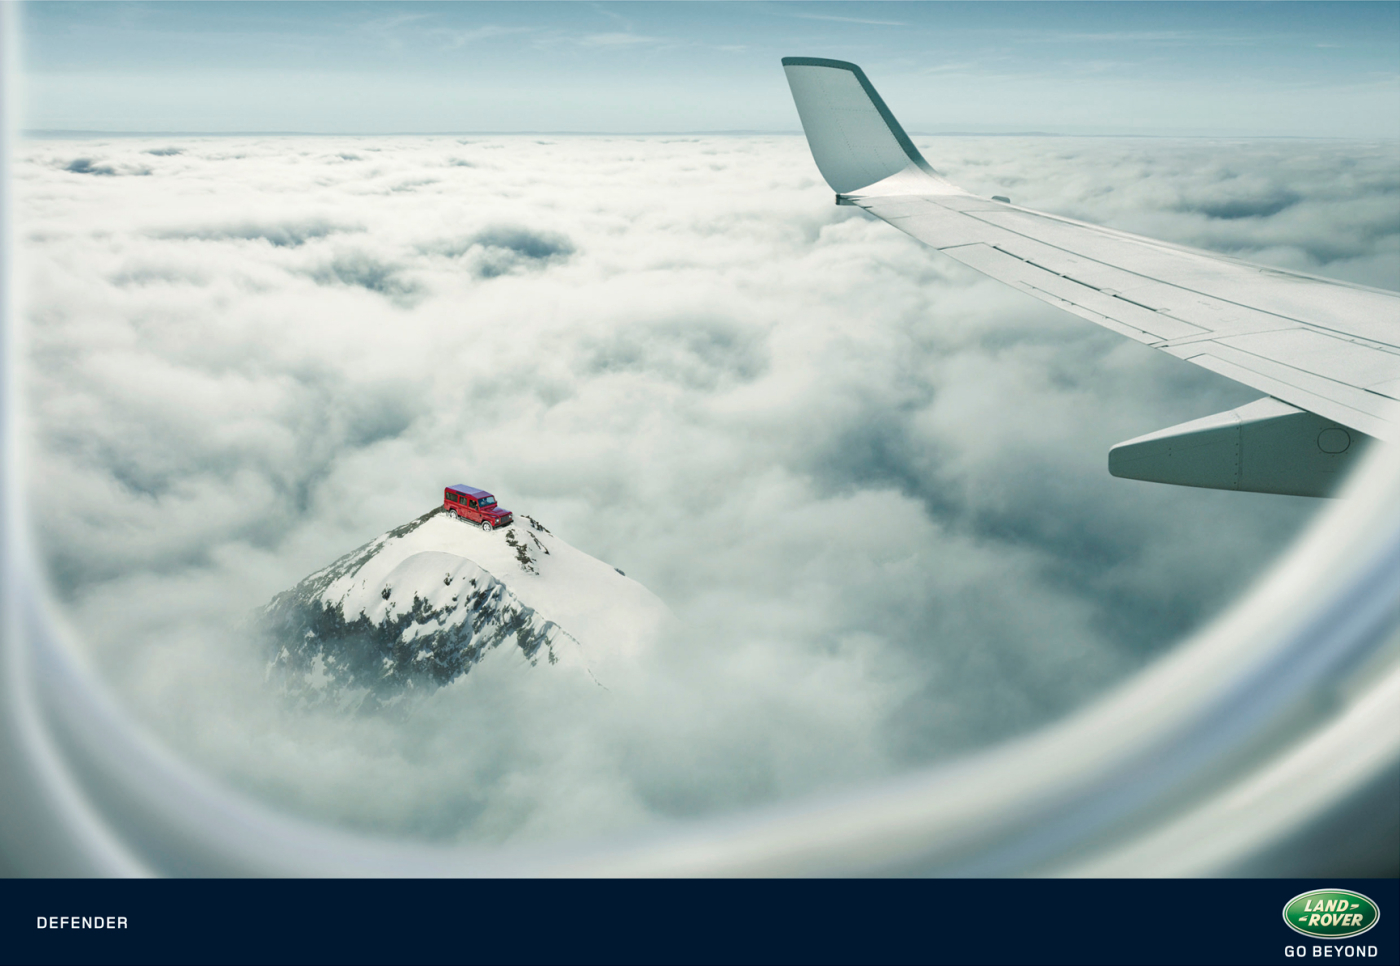 Land Rover Defender from above the clouds in print advertisement